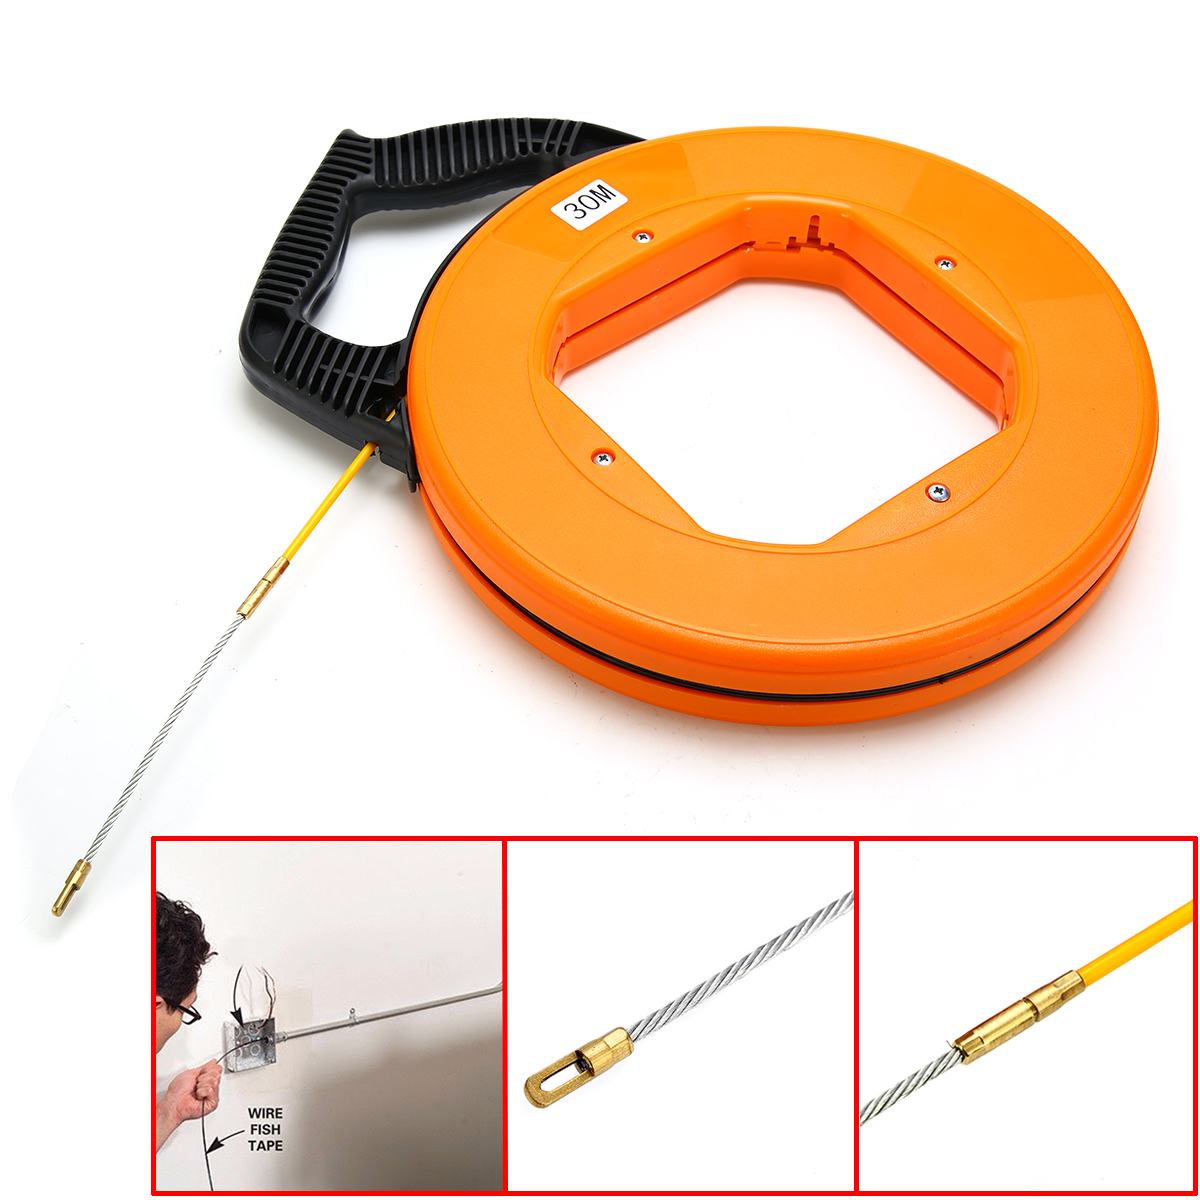 Portable 30 Meter Fiberglass Fish Tape Fishing Tool Reel Puller Conduit Duct Rodder Pulling Wire Cable